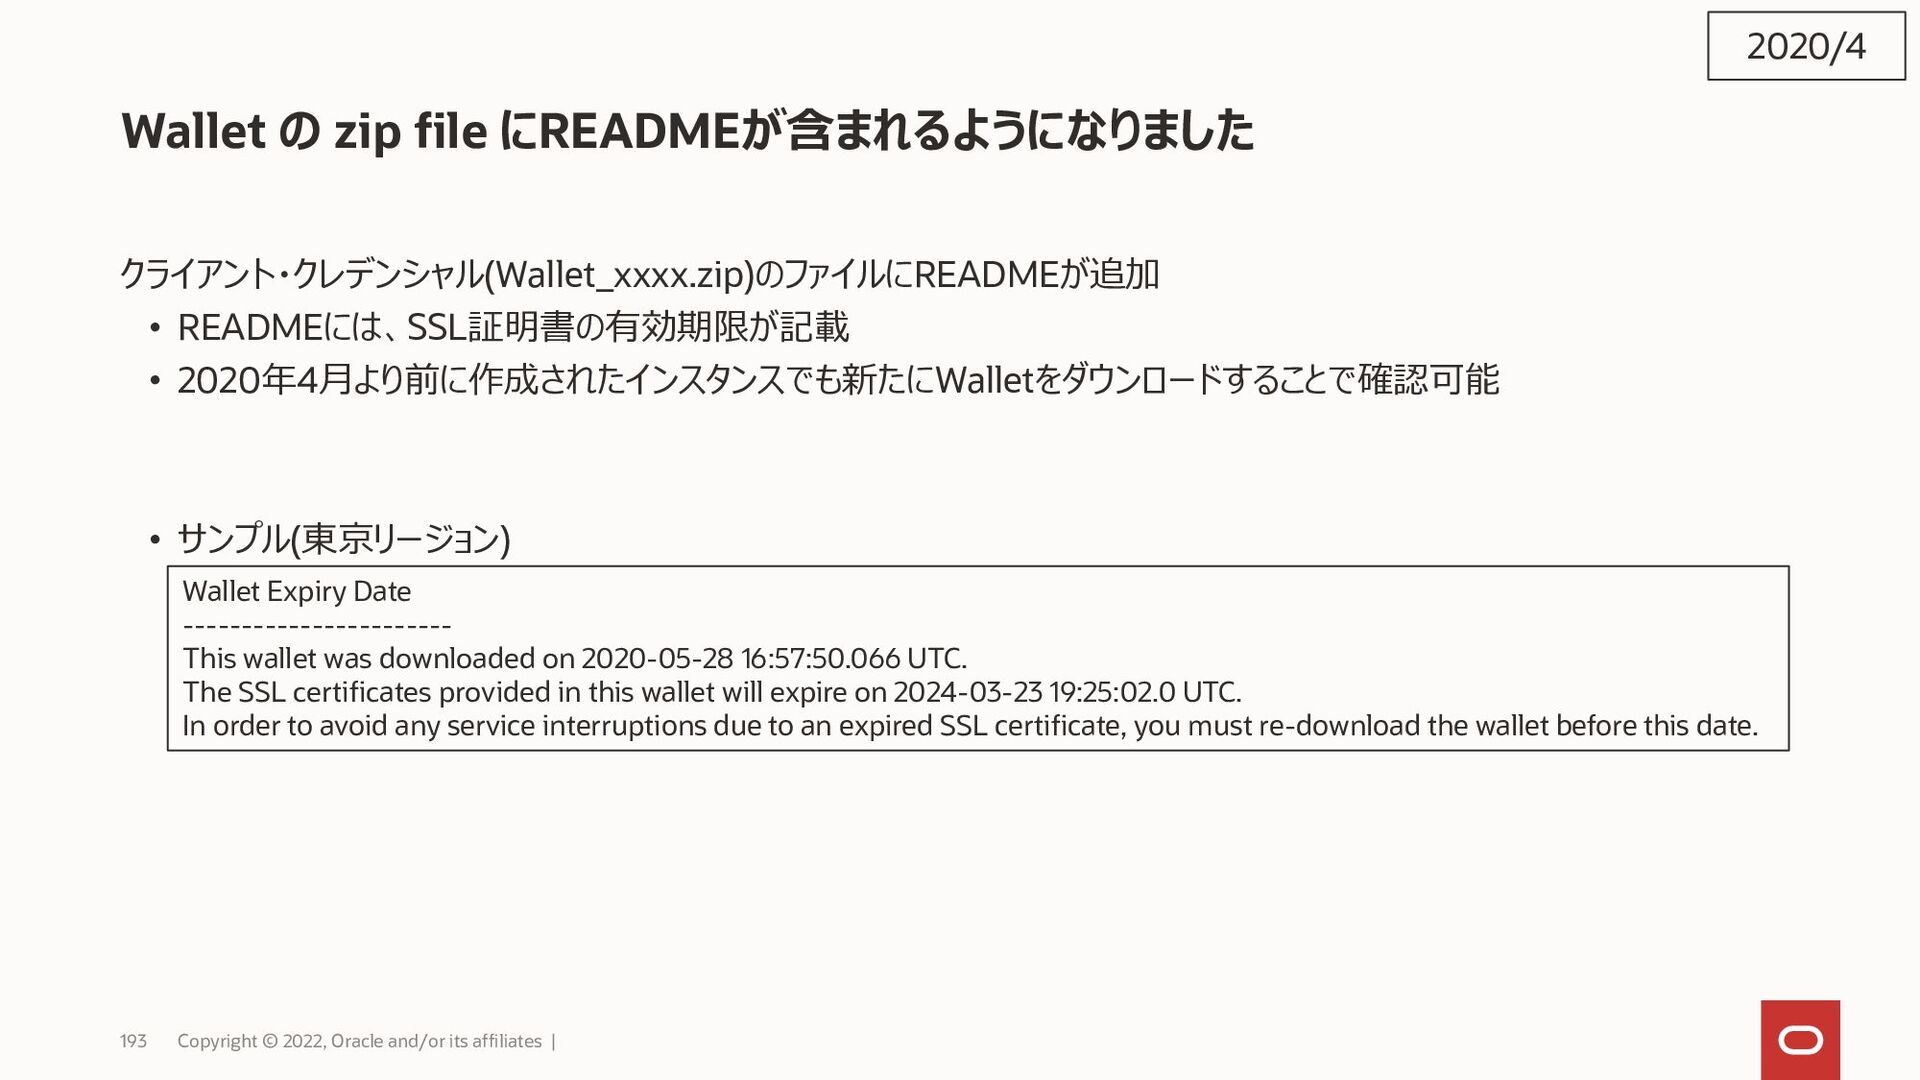 193 Copyright © 2021, Oracle and/or its affilia...